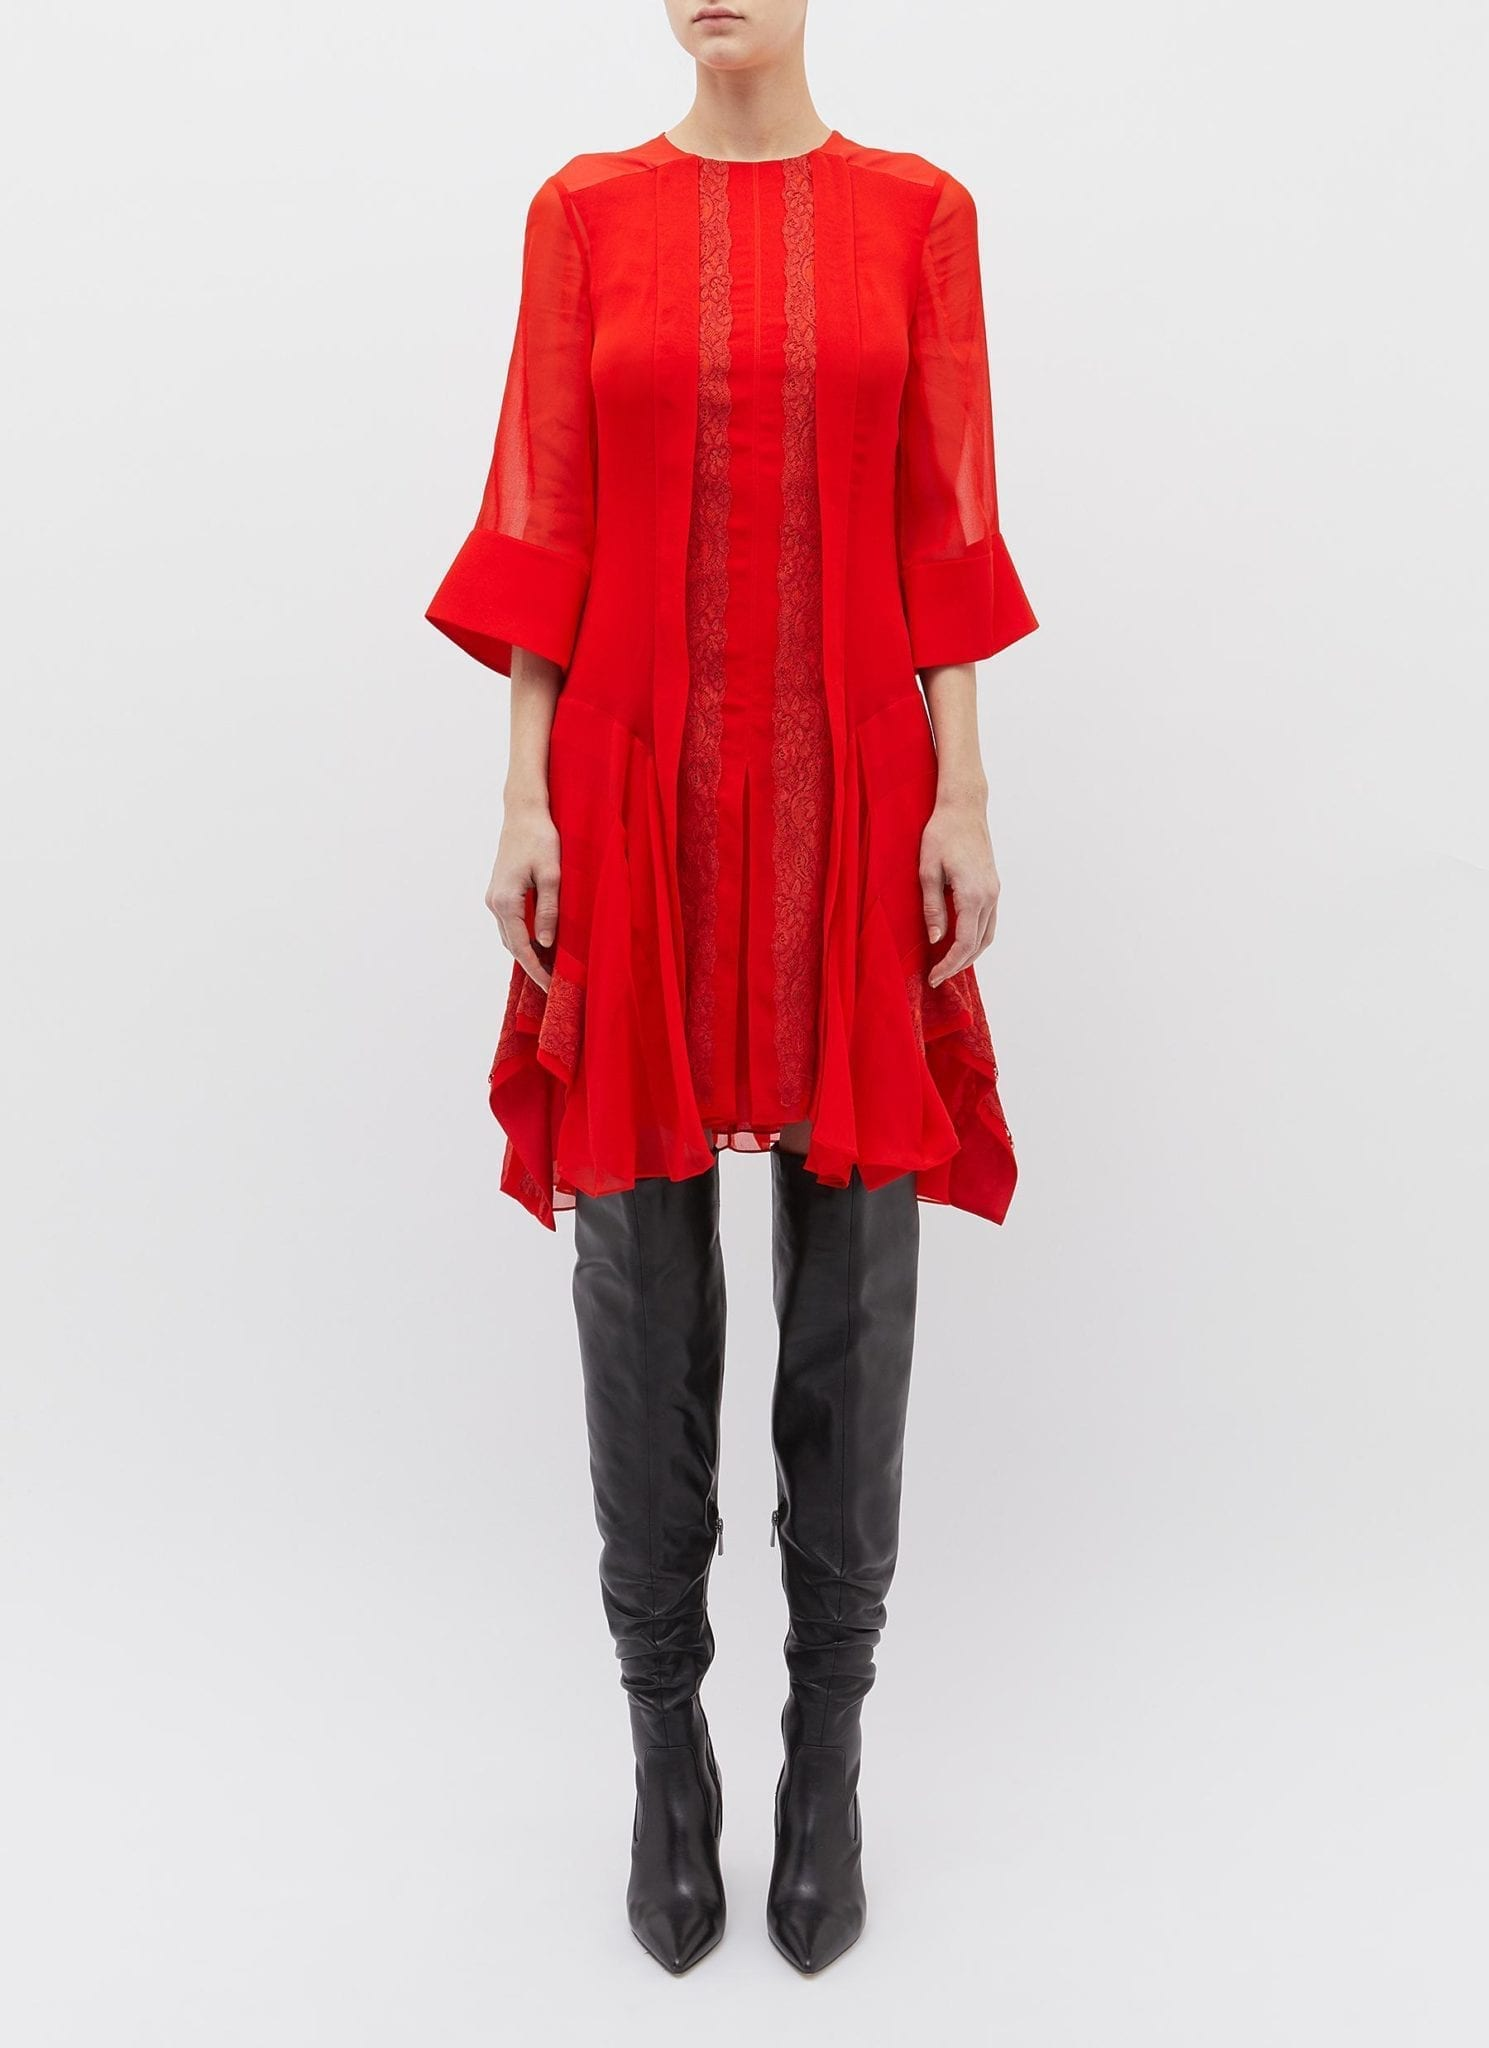 CHLOÉ Lace Trim Crepe Red Dress